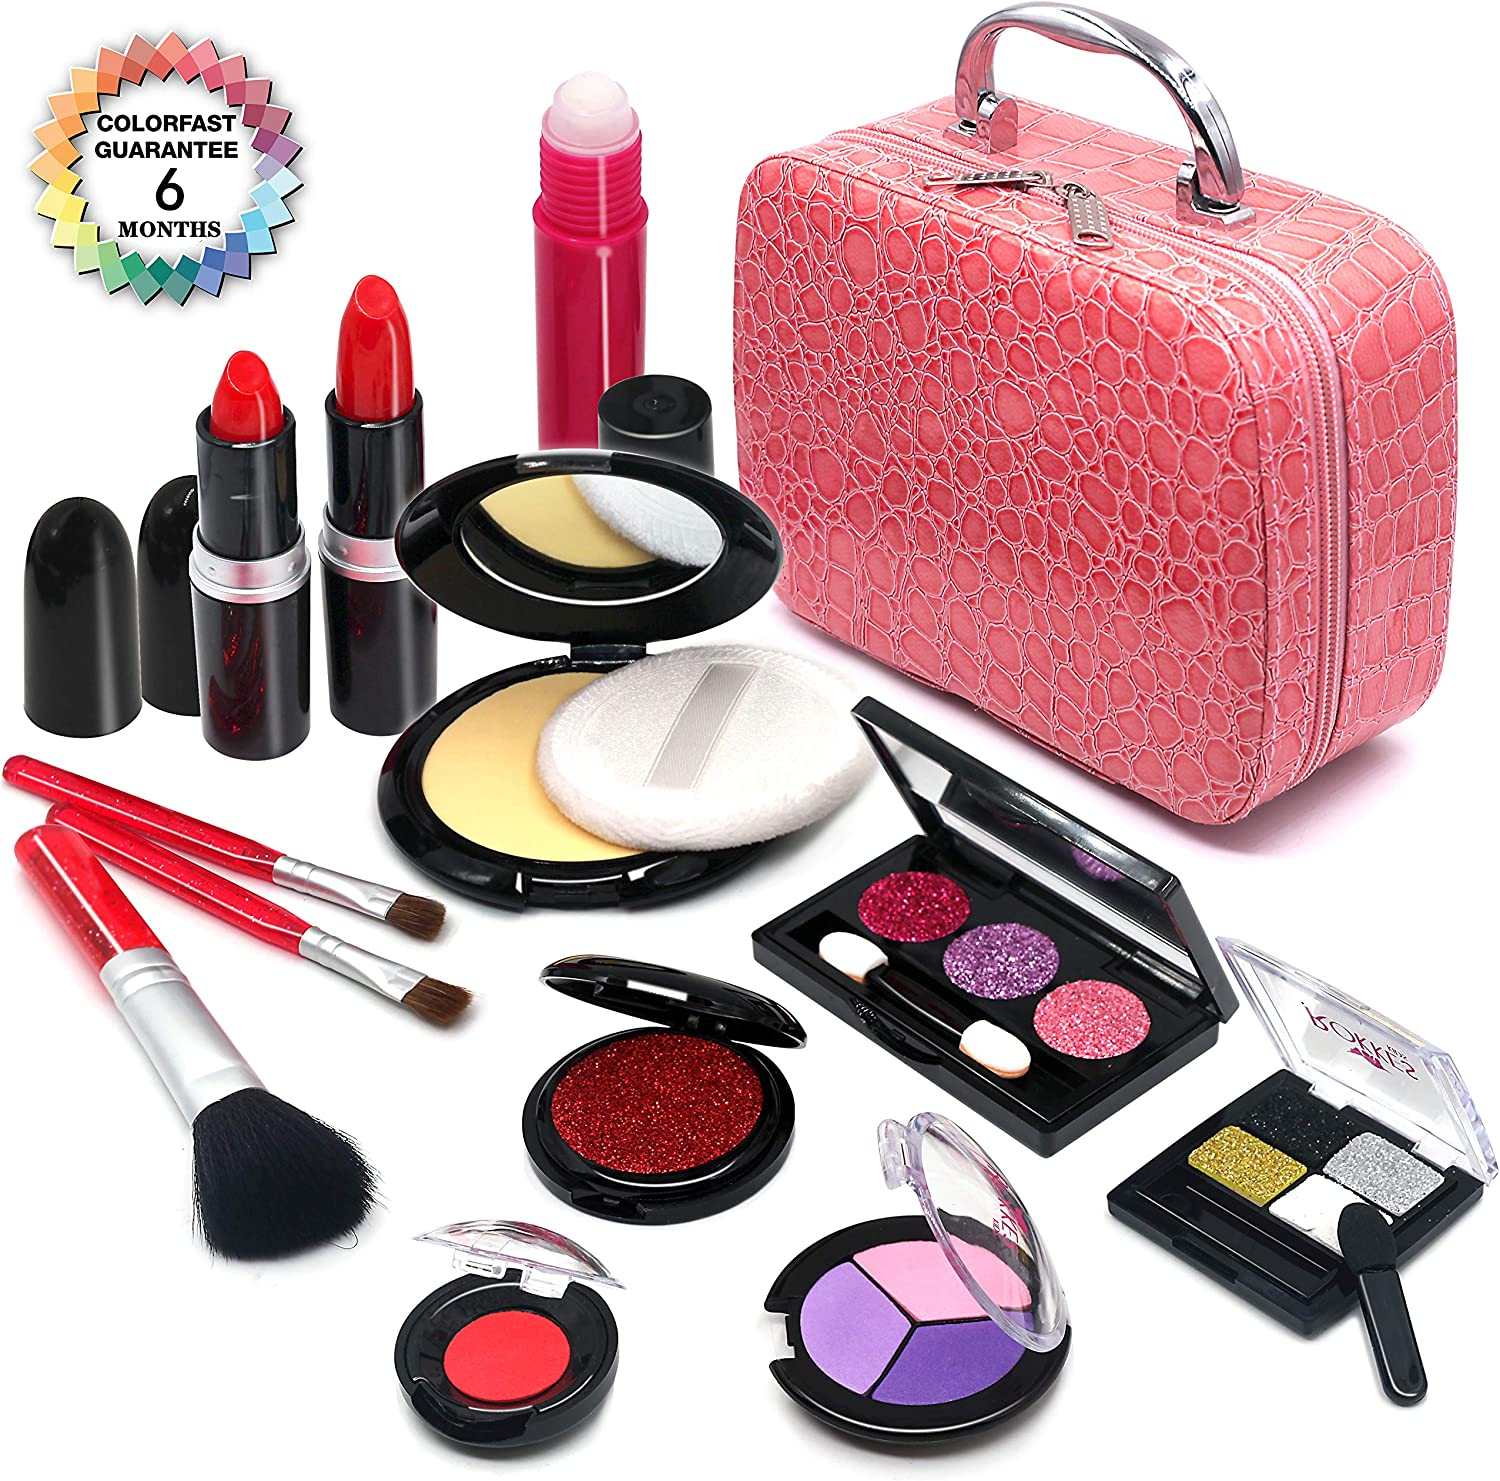 Senrokes Pretend Makeup Kit Cosmetic Toy Fake Play Rubber Makeup Set with Cosmetic Bag for Girls, Safe & Non-Toxic Toy Makeup Girl Birthday Gift for 4-10 Year Old Girls Fit Role-Play, Princess Dress